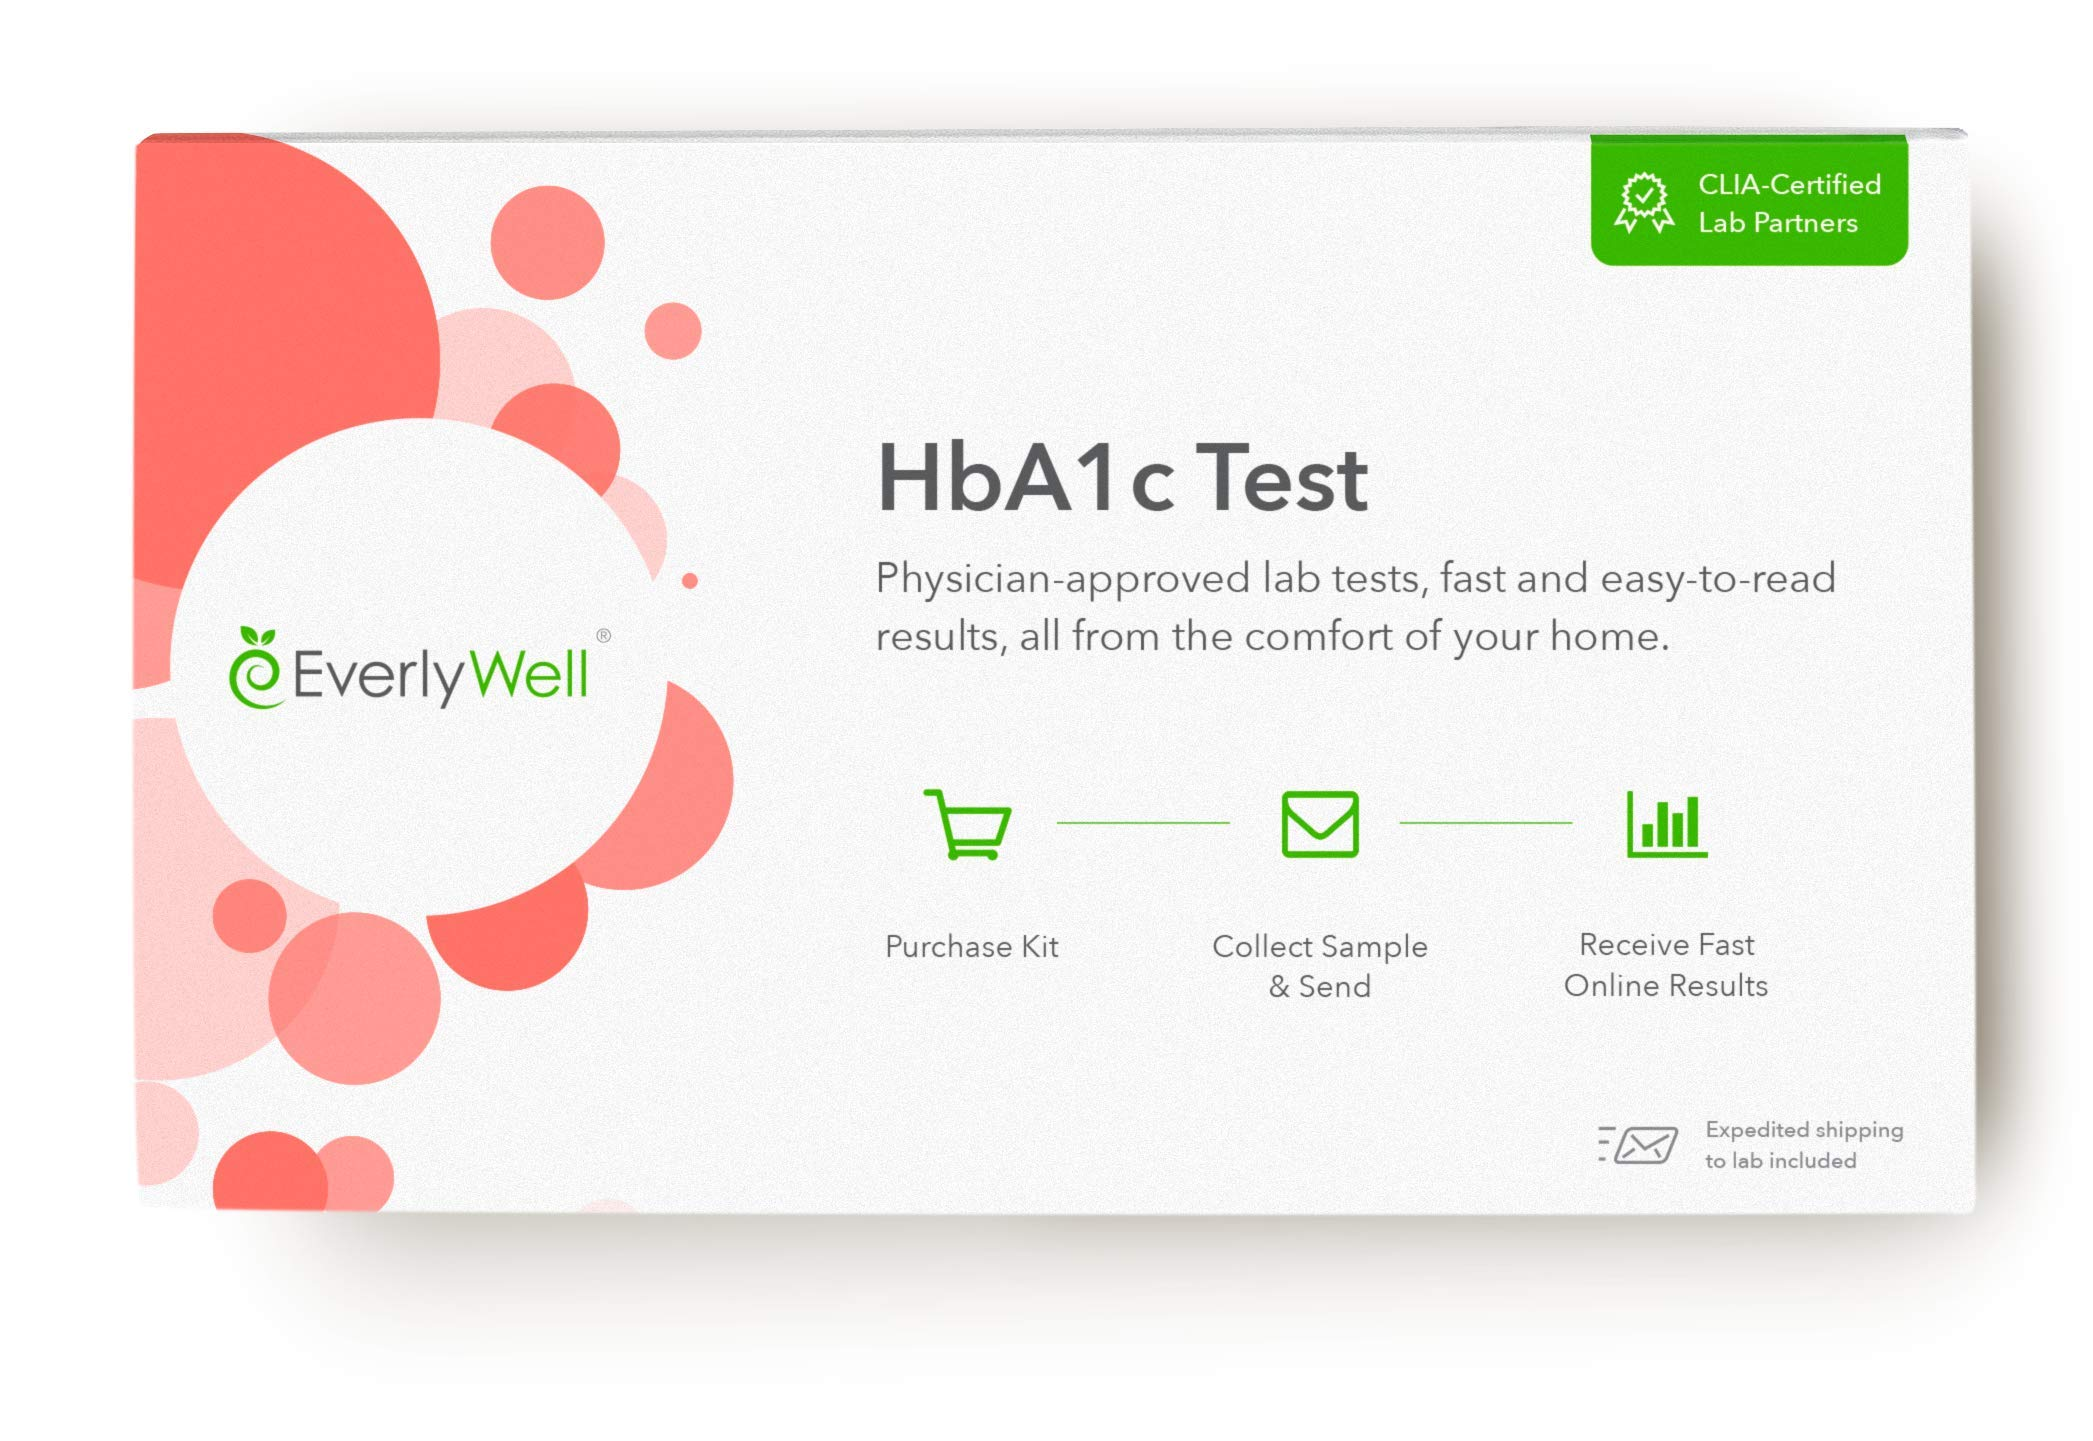 EverlyWell - at-Home HbA1c Test - Measure Your Blood Sugar Levels (Not Available in Maryland, NY, NJ, RI)